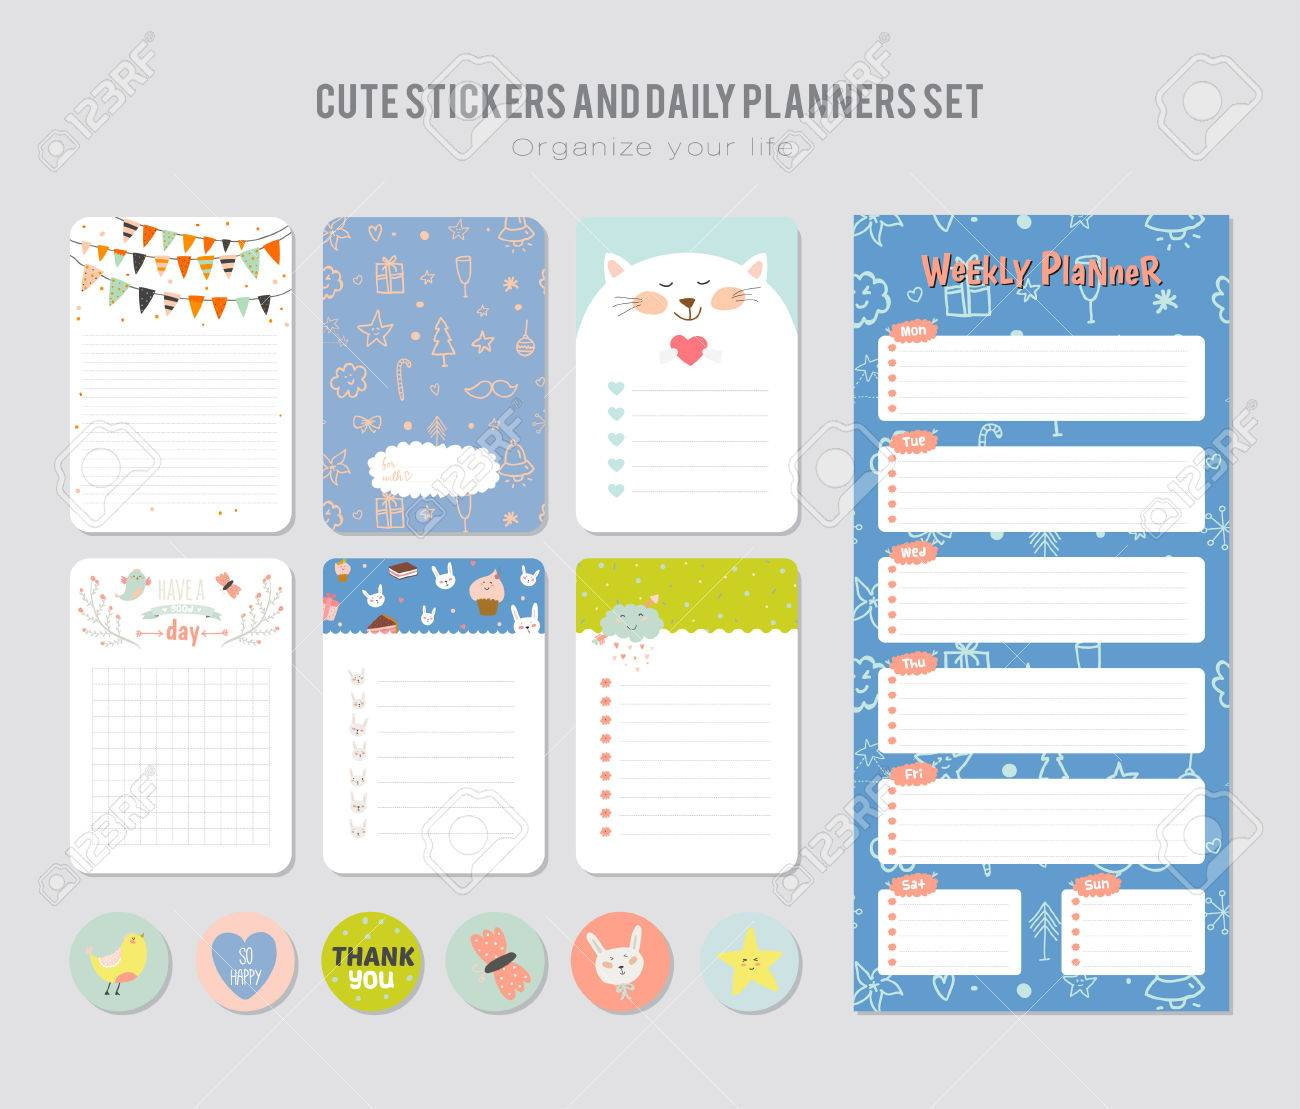 Daily Calendar Template | Cute Daily Calendar Template Note Paper And Stickers Set With